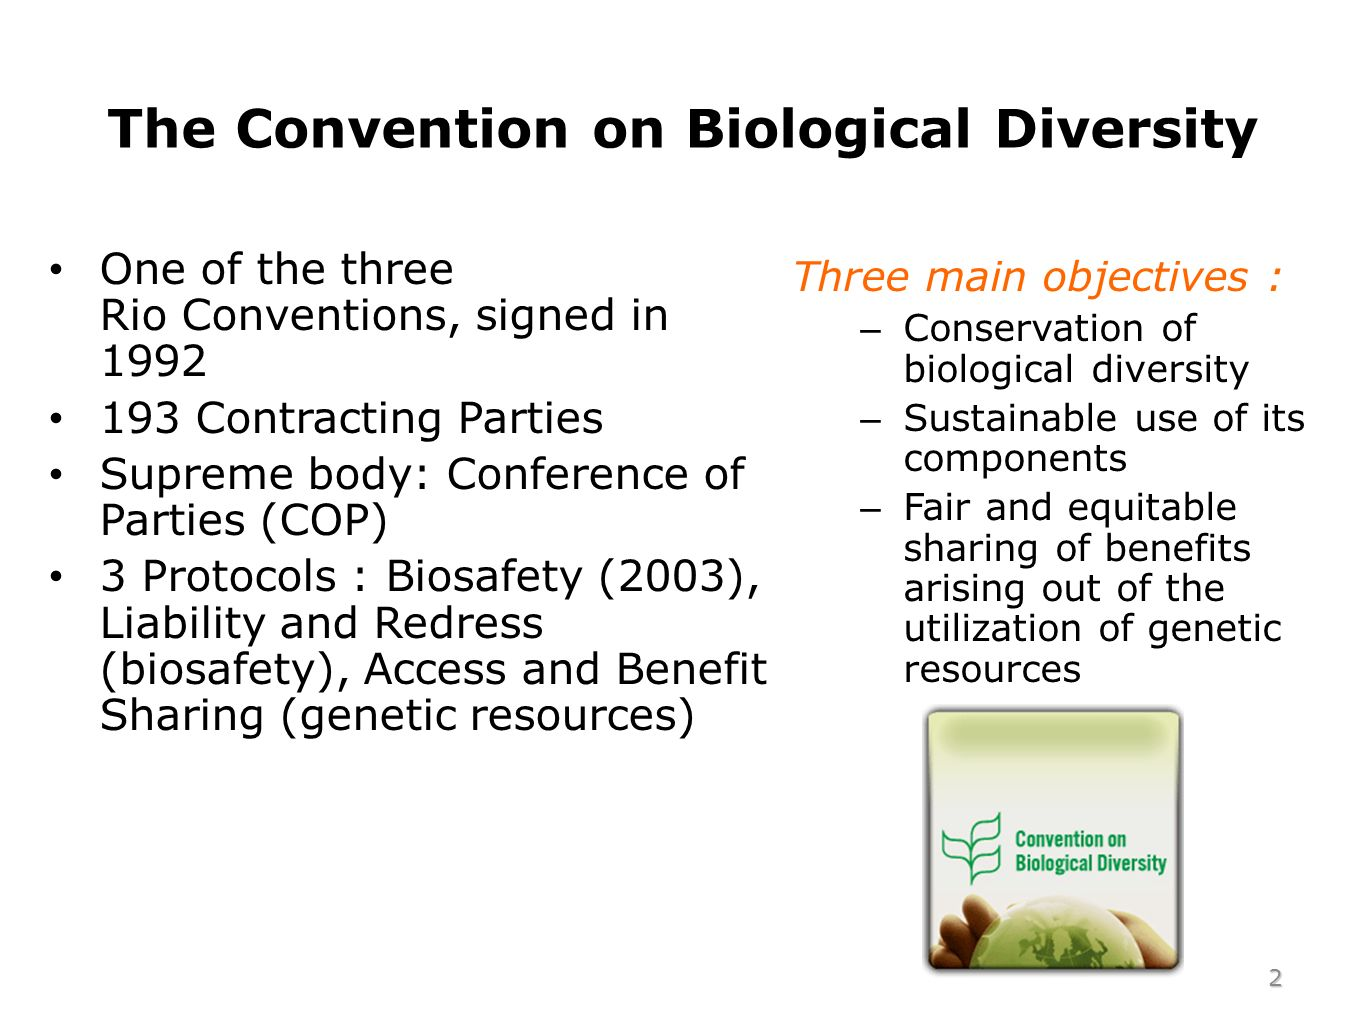 The Convention on Biological Diversity One of the three Rio Conventions, signed in 1992 193 Contracting Parties Supreme body: Conference of Parties (COP) 3 Protocols : Biosafety (2003), Liability and Redress (biosafety), Access and Benefit Sharing (genetic resources) Three main objectives : – Conservation of biological diversity – Sustainable use of its components – Fair and equitable sharing of benefits arising out of the utilization of genetic resources 2